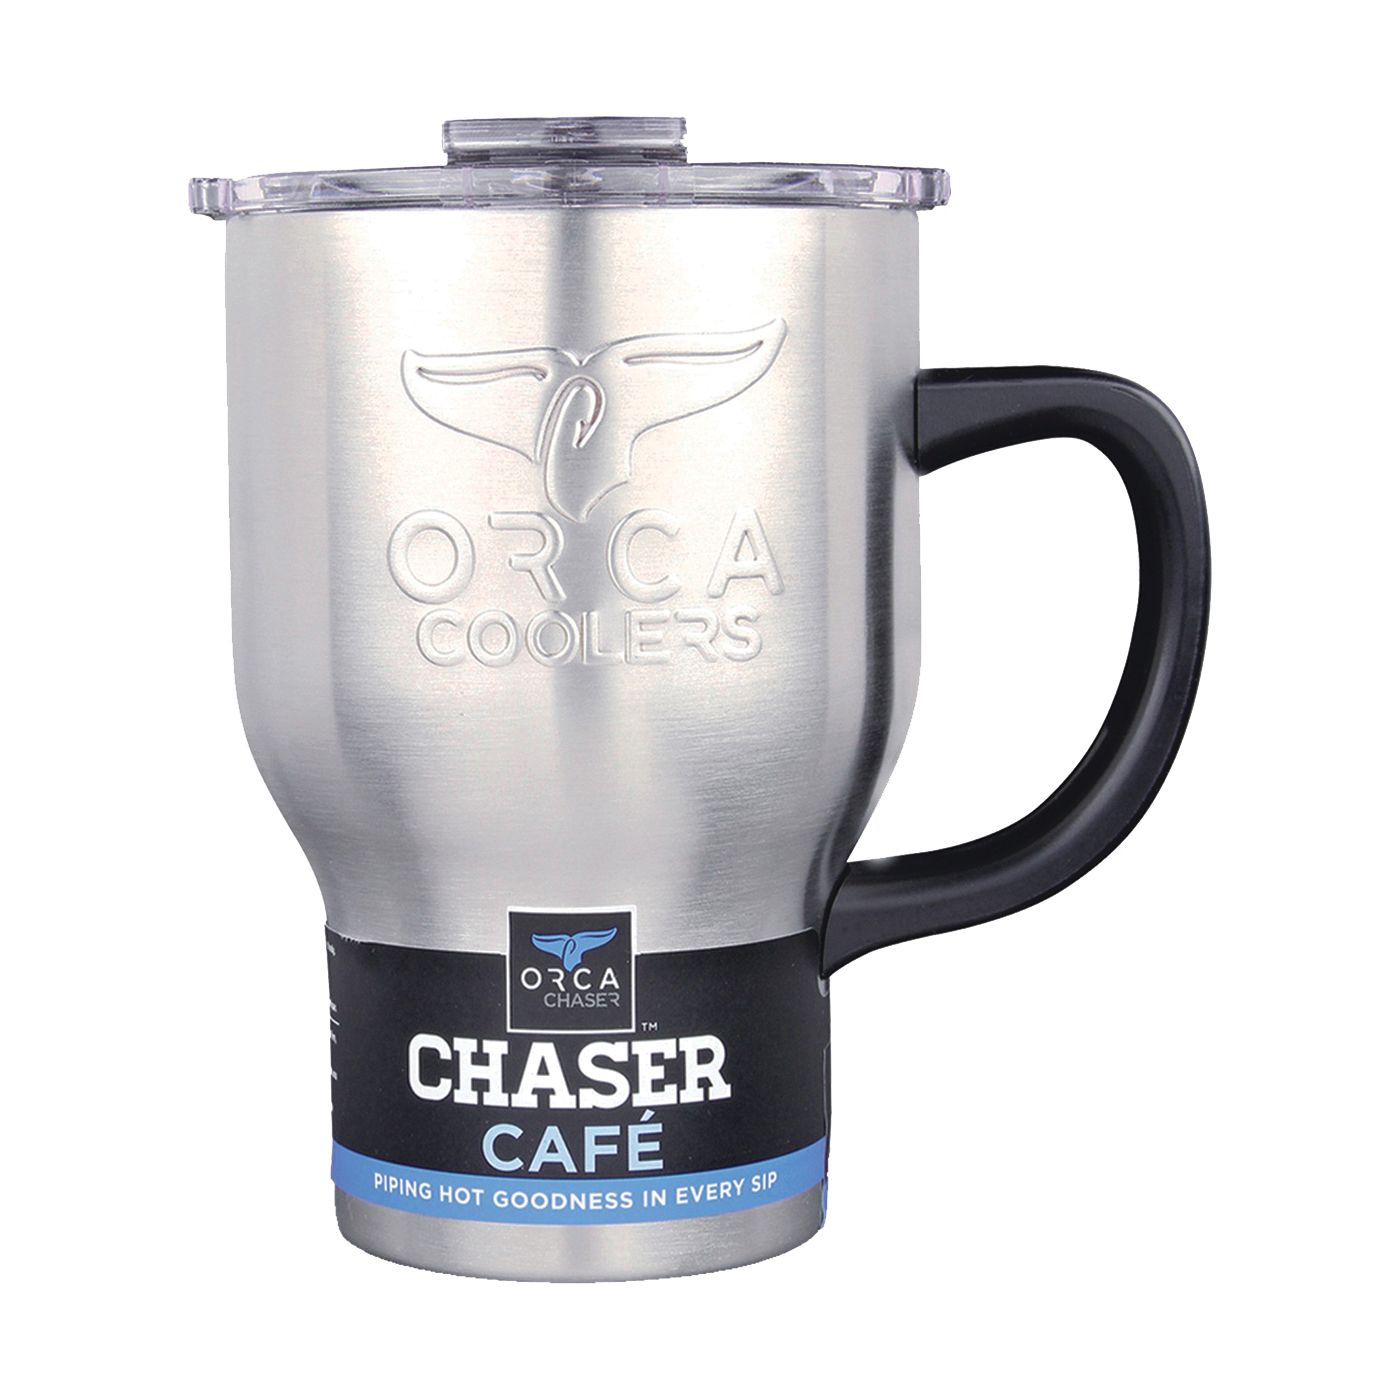 Picture of ORCA ORCCHACAF Coffee Mug, 20 oz Capacity, Stainless Steel